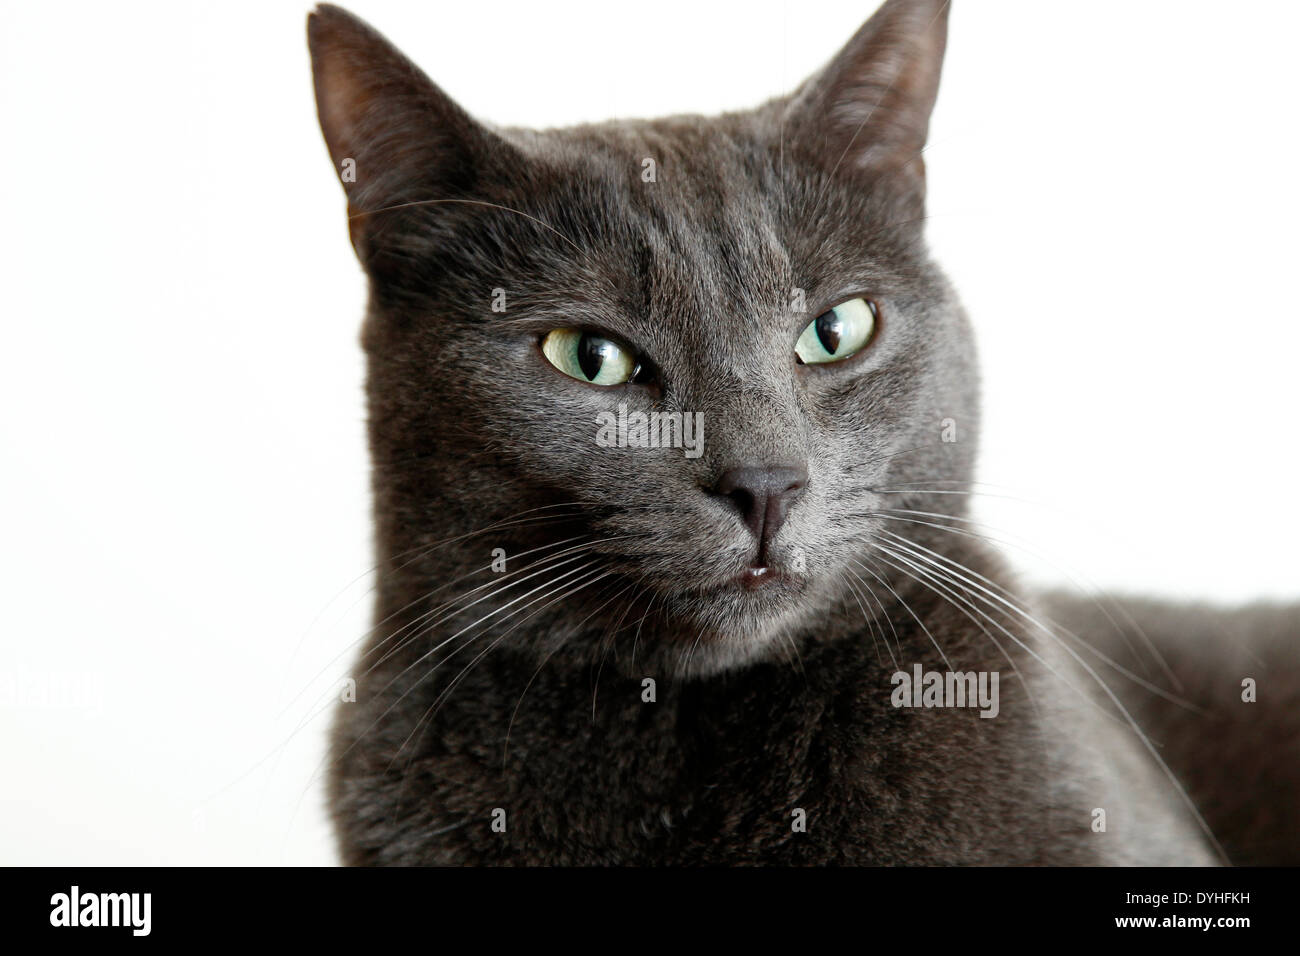 A gray cat with white background - Stock Image